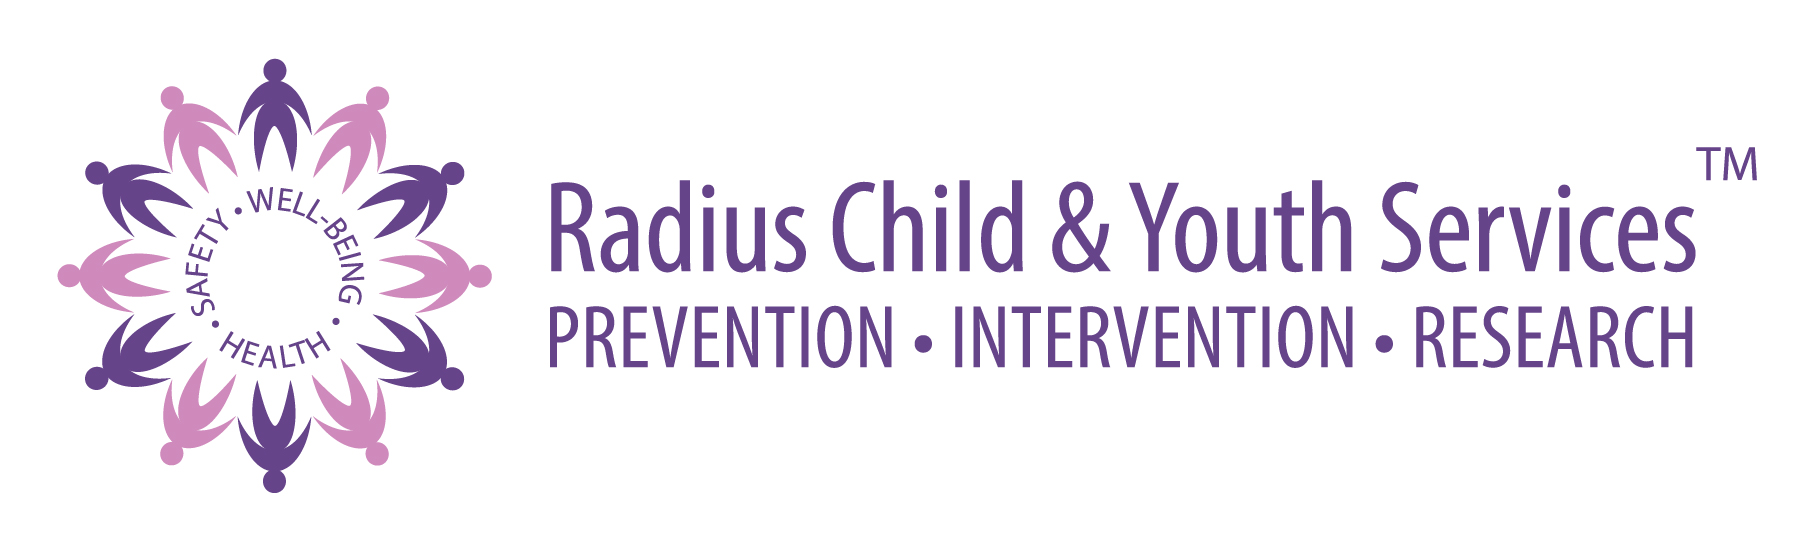 Logo Image for Radius Child and Youth Services